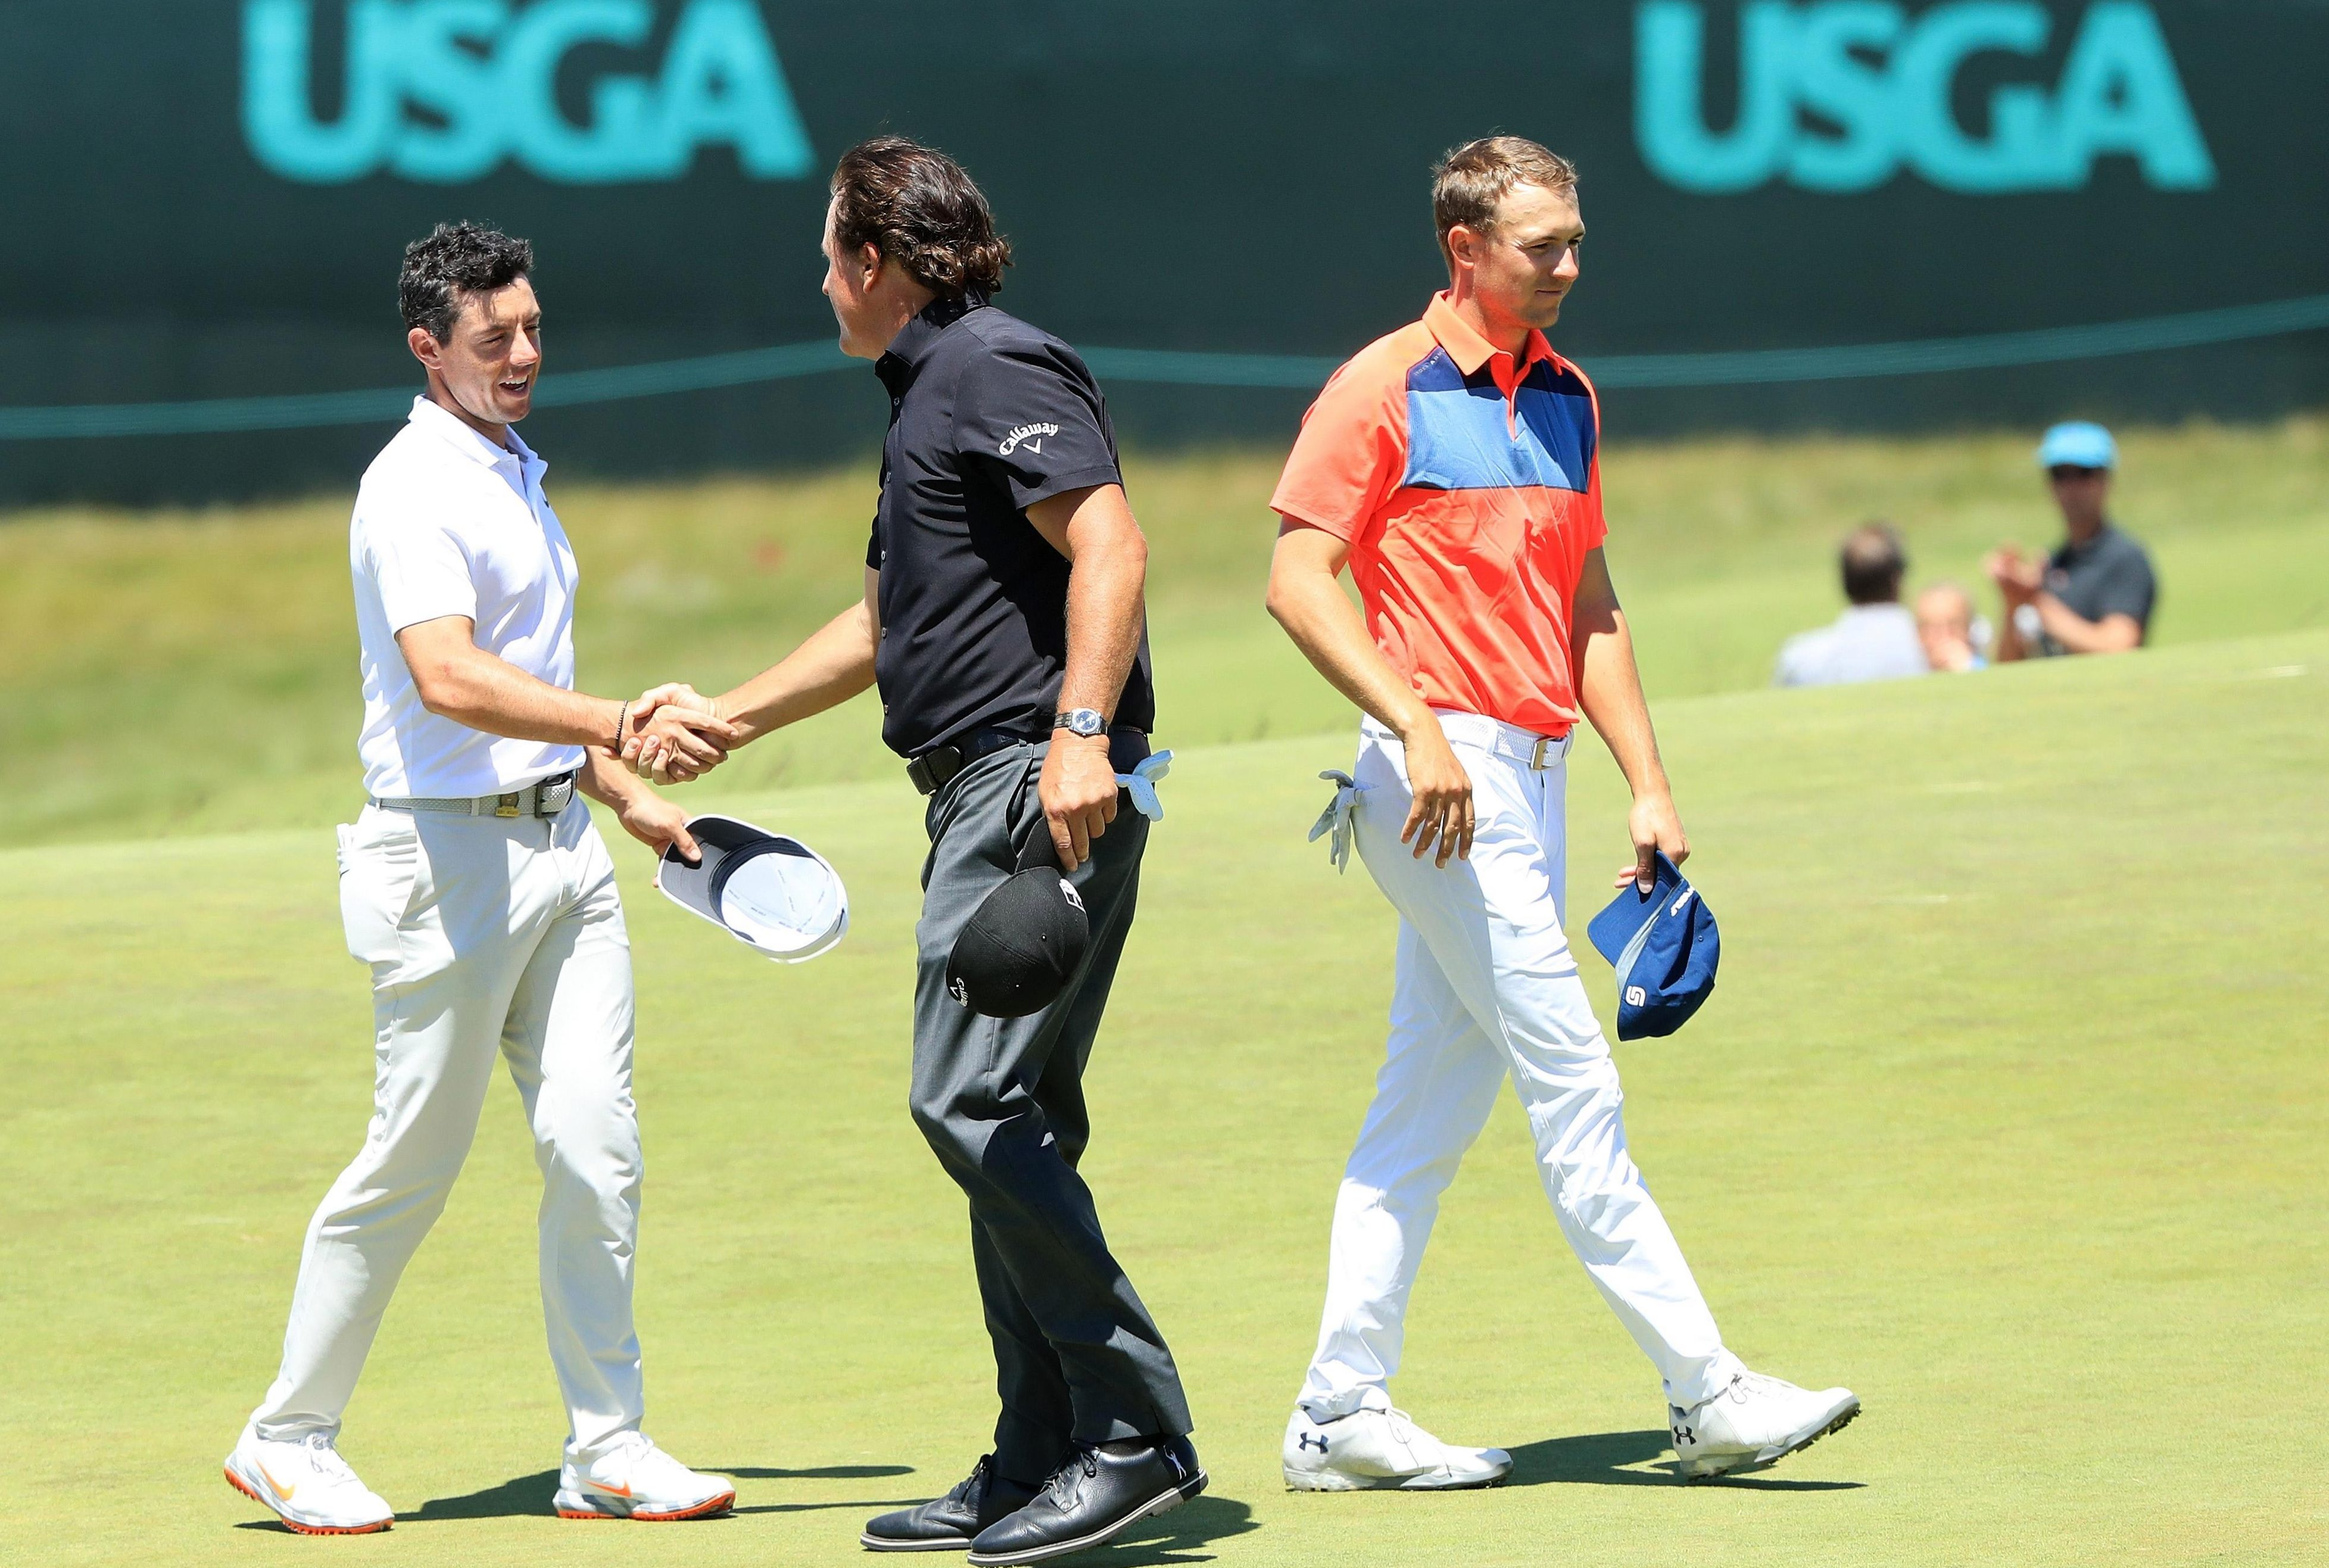 There was plenty of experience in Rory McIlroy's group